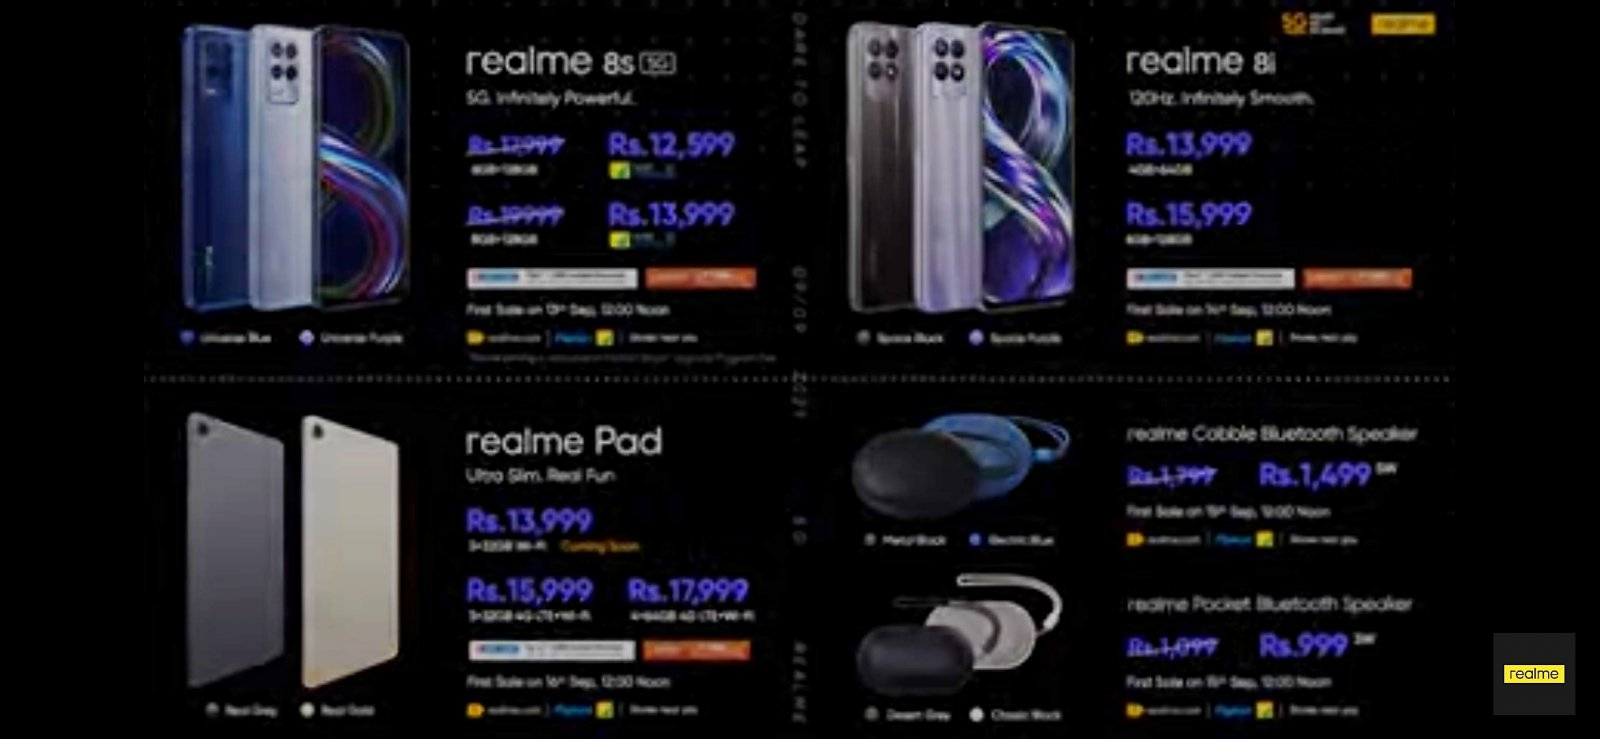 realme new launch prices 9-09-21.jpg